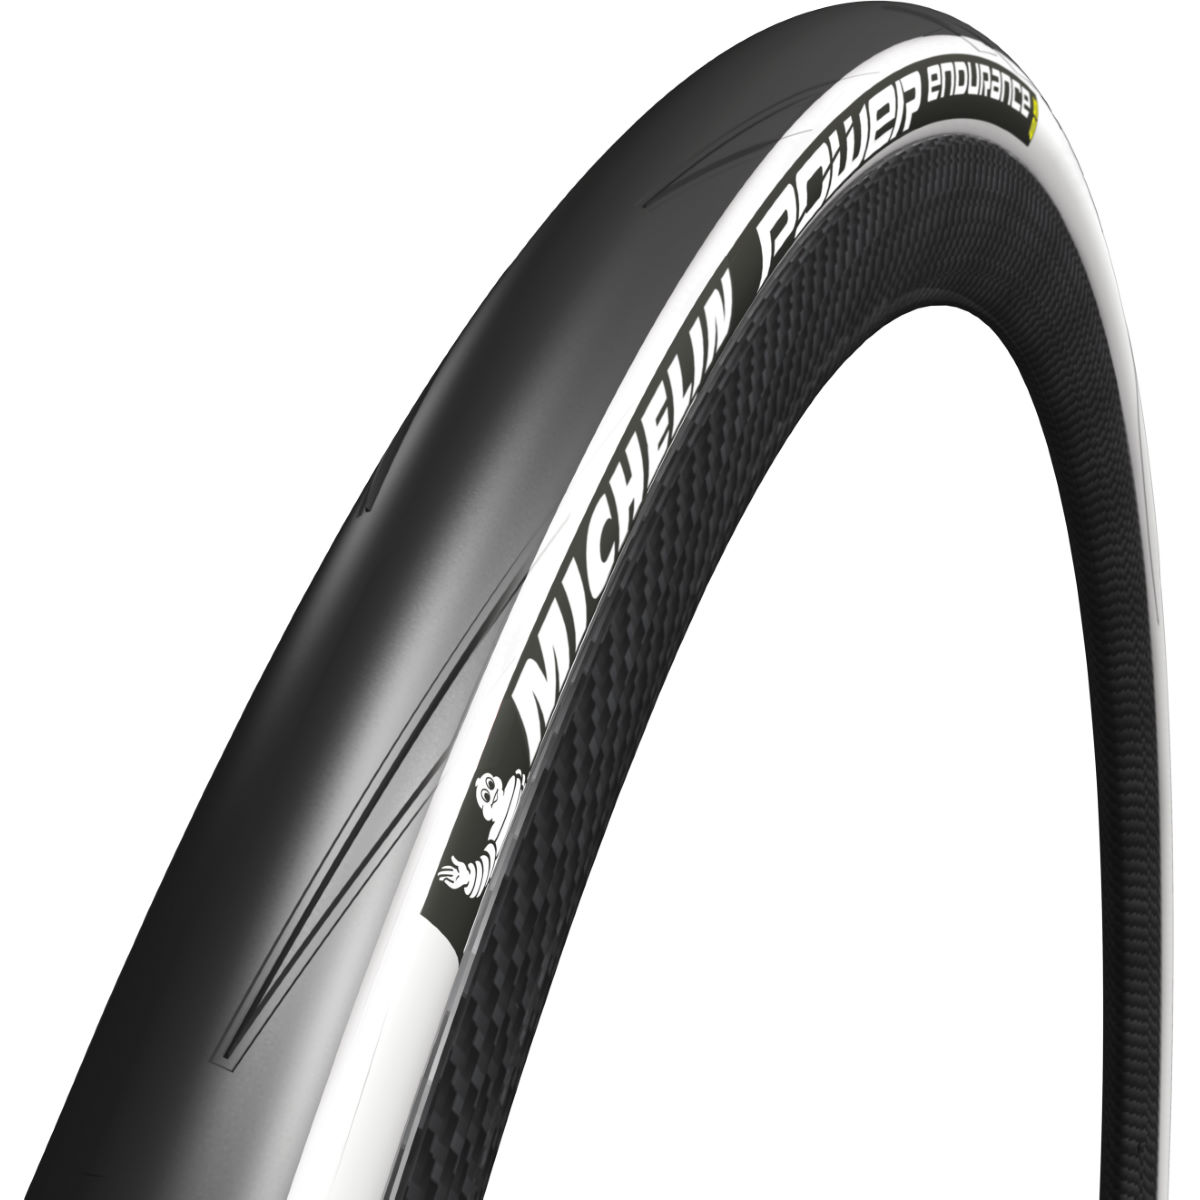 Pneu souple de route Michelin Power Endurance (700 x 25 c) - Blanc